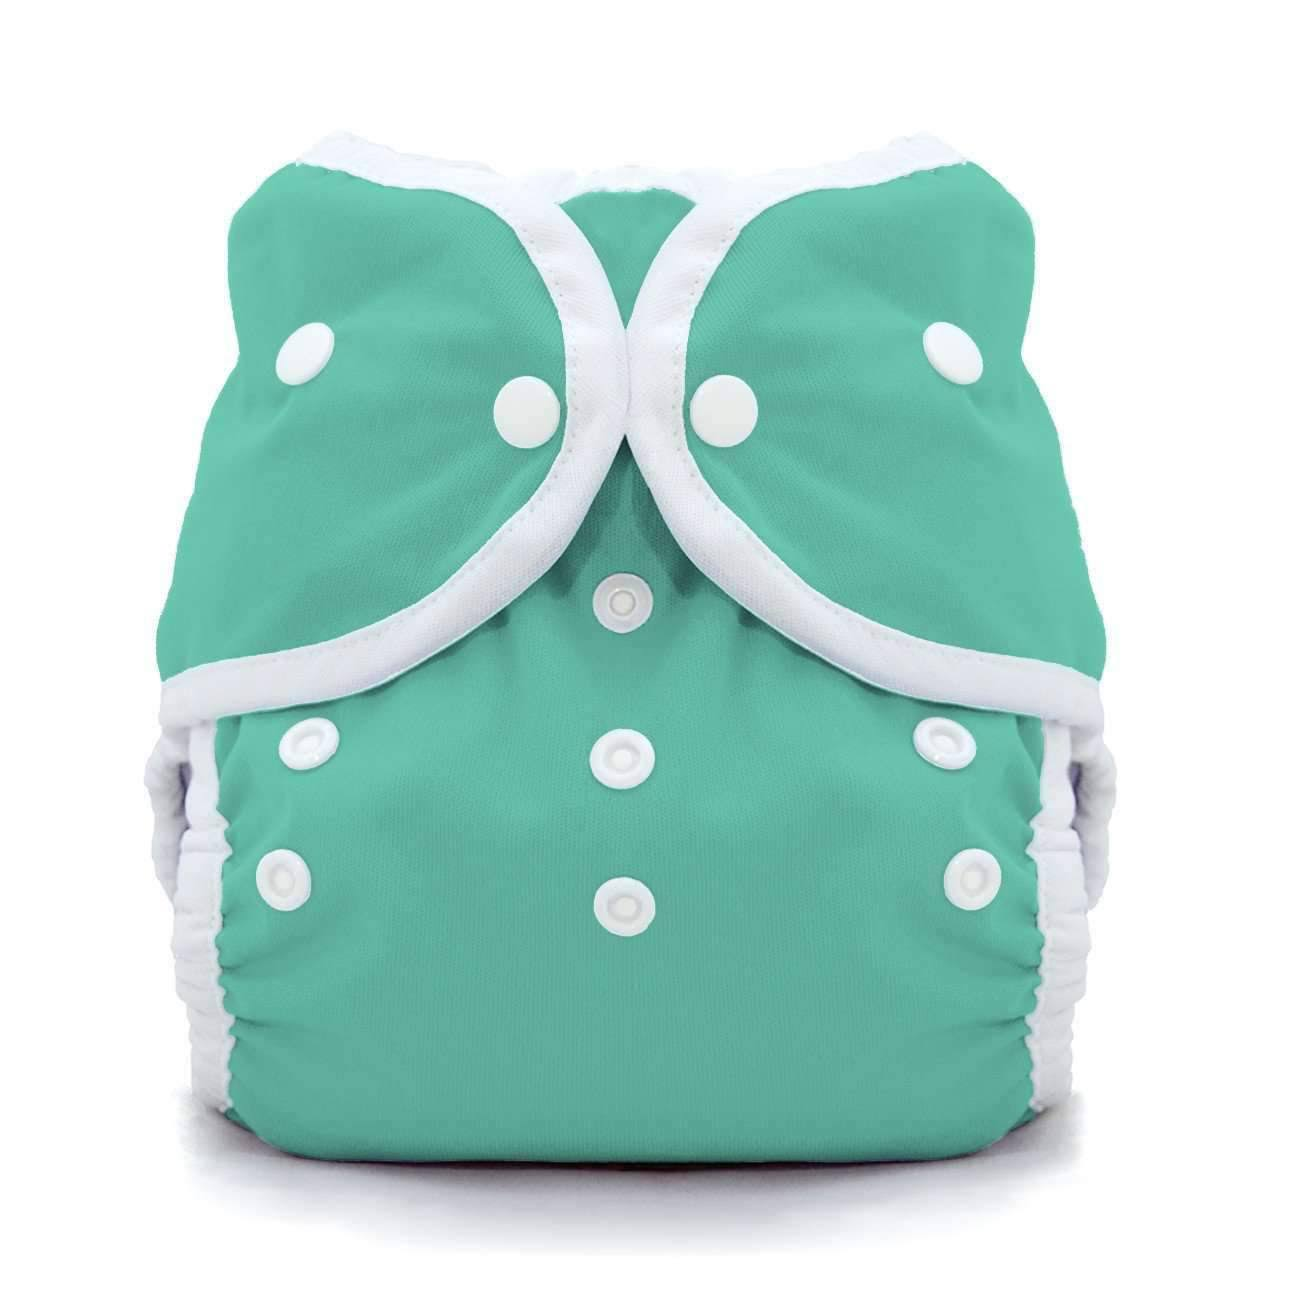 Thirsties Duo Wrap Snap Diaper Cover - Aqua, Size One